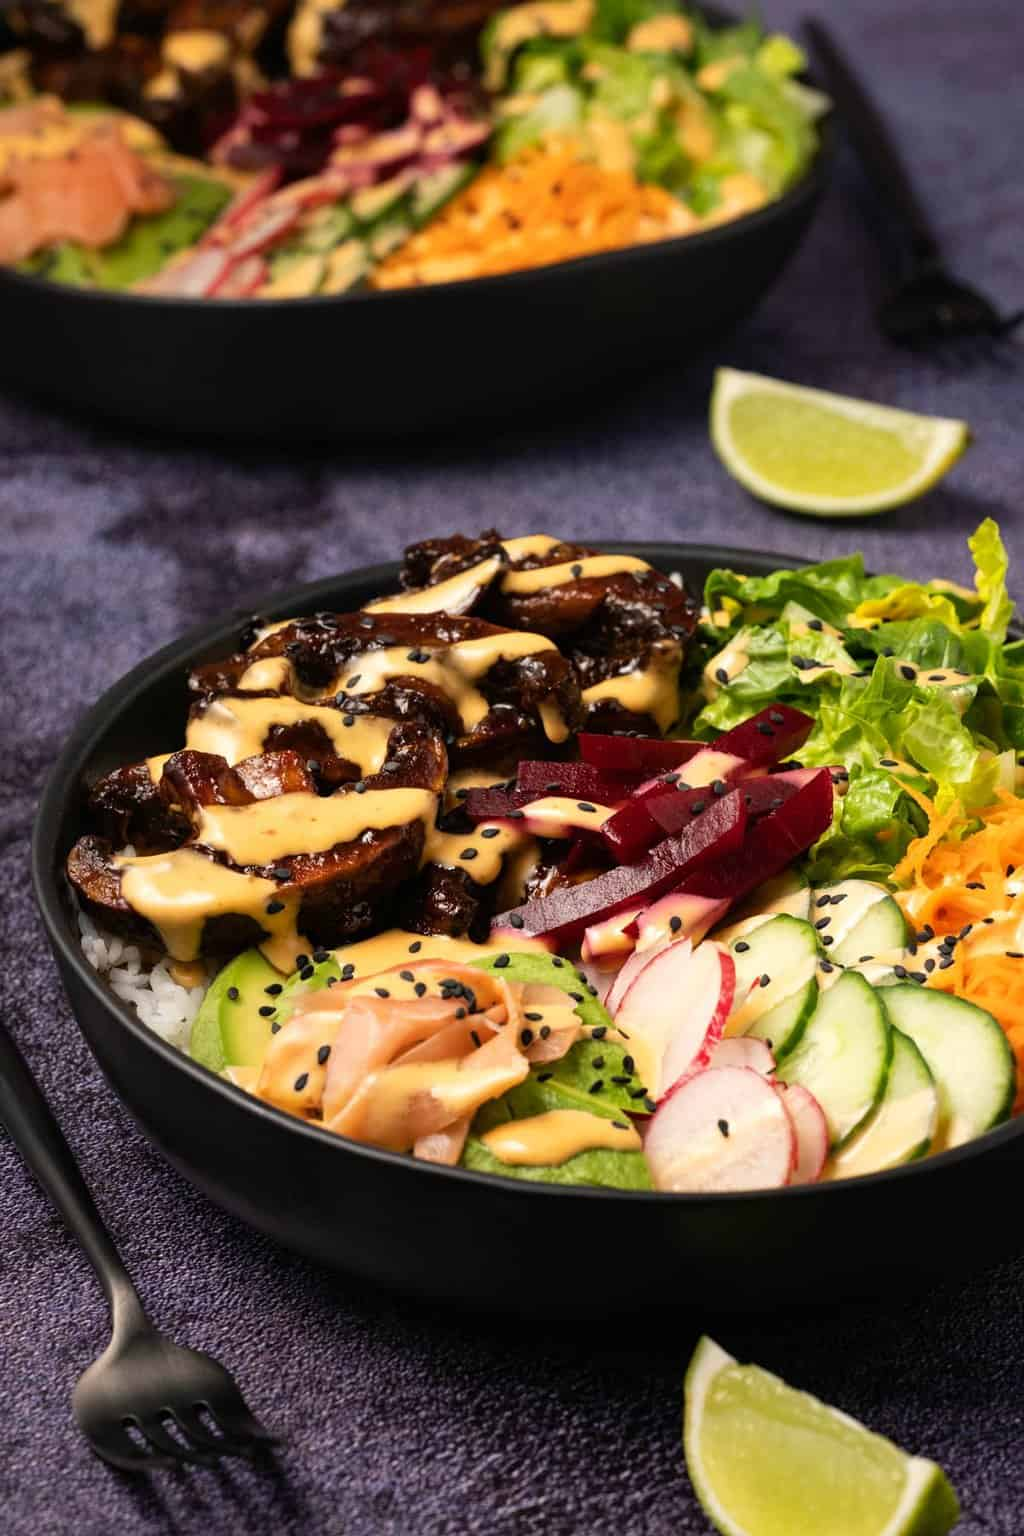 Black bowl with salad and rice and mushrooms, drizzled with a creamy dressing.